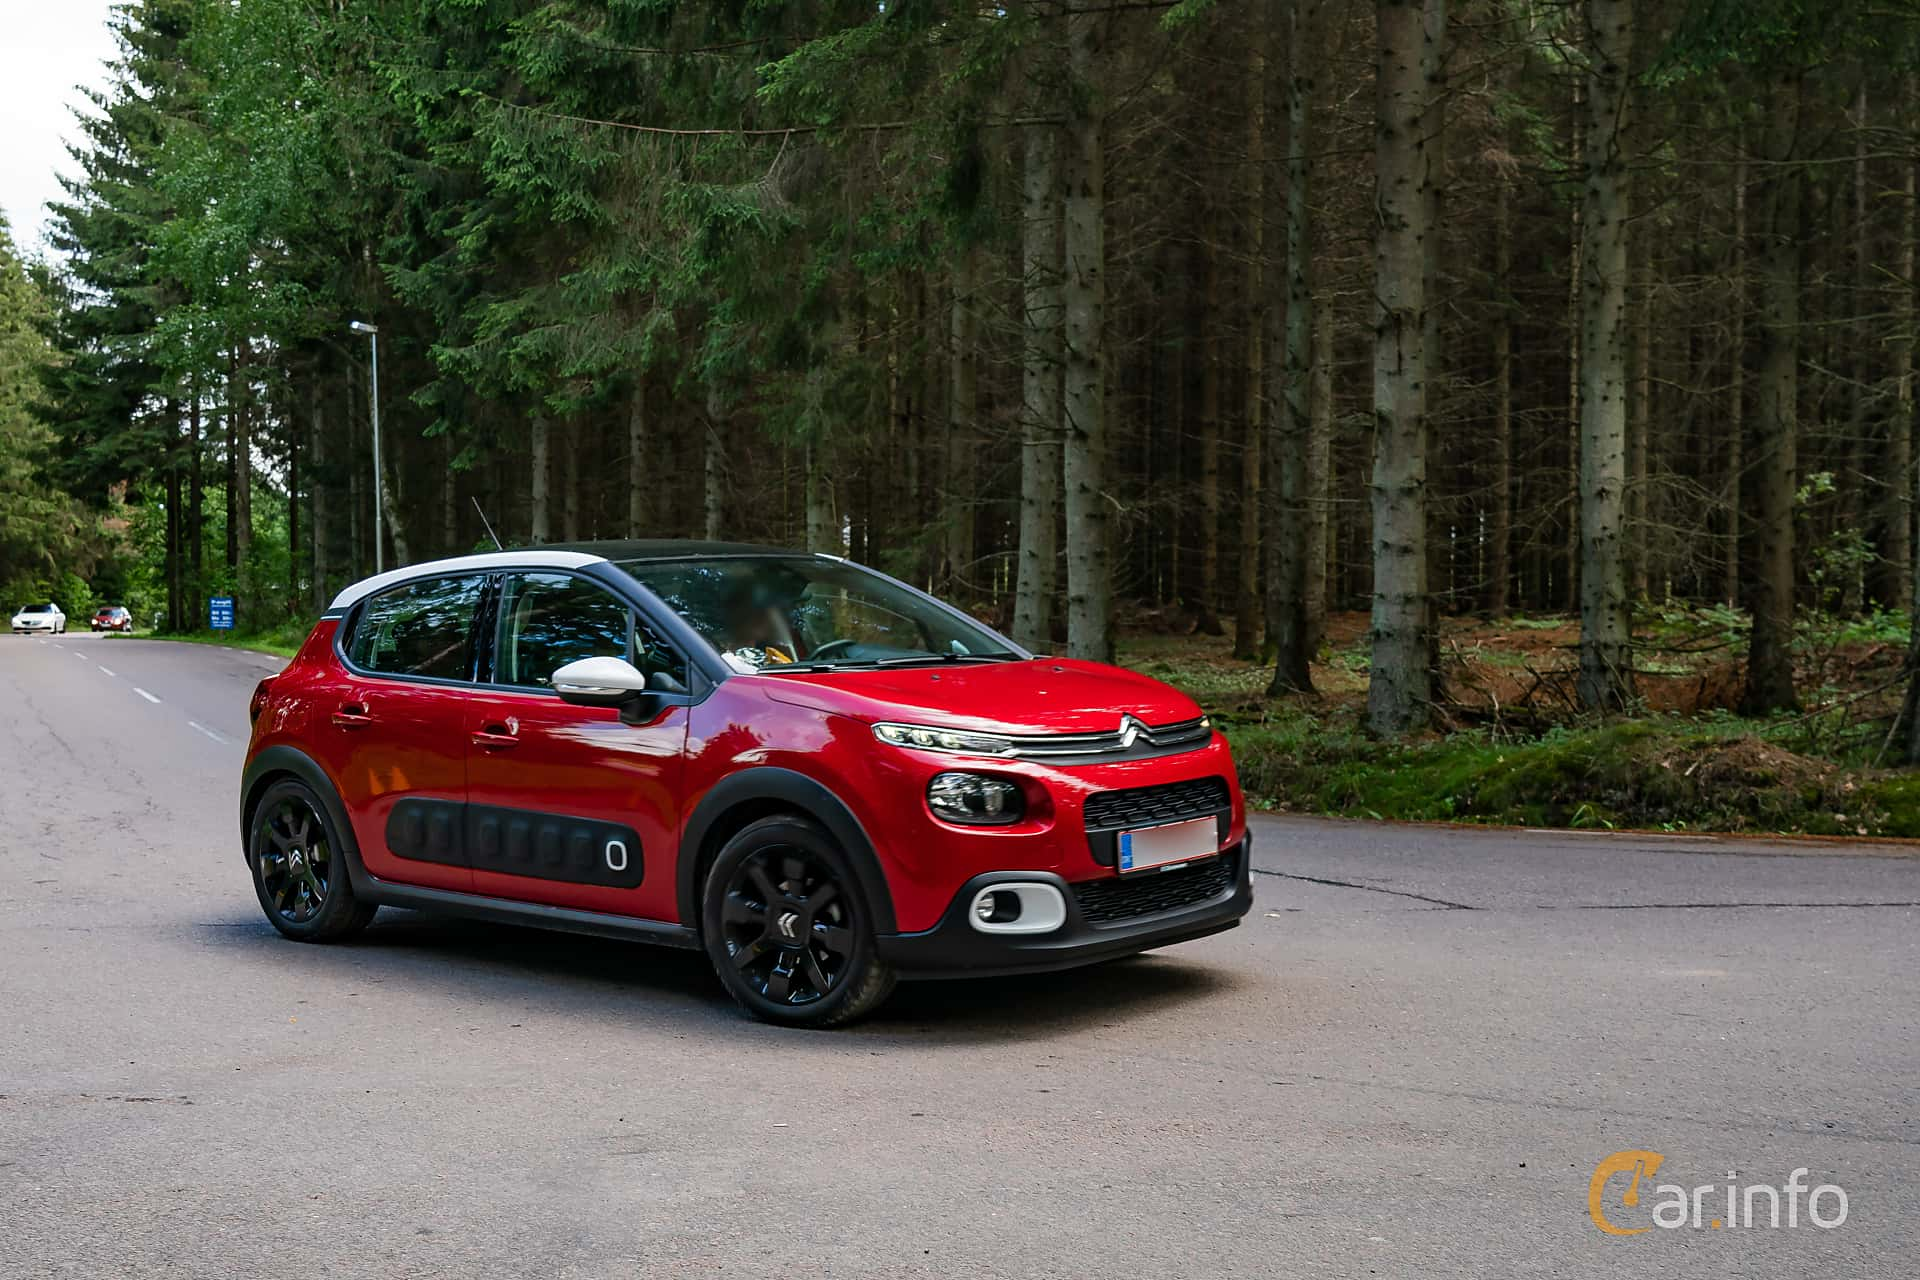 Citroën C3 1.2 PureTech Manual, 110hp, 2018 at Svenskt sportvagnsmeeting 2019